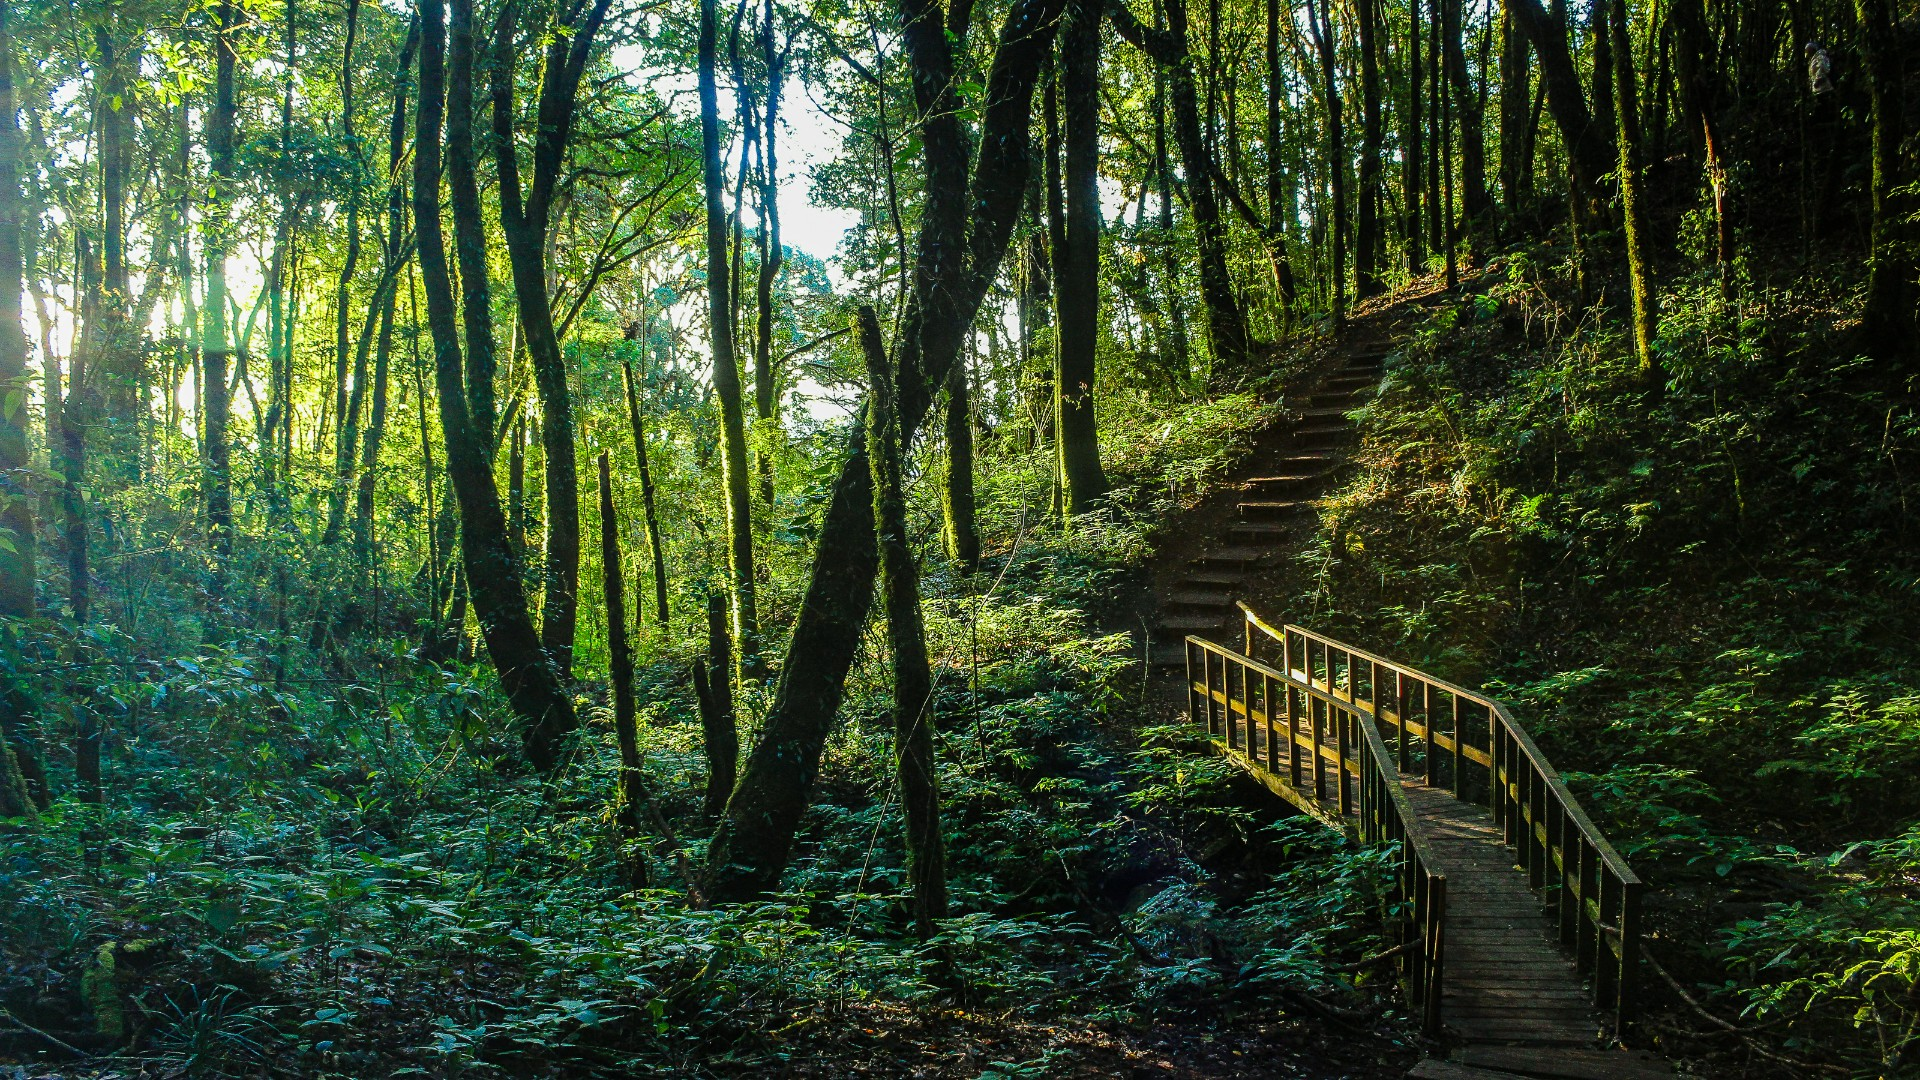 Stairs in the forest wallpaper